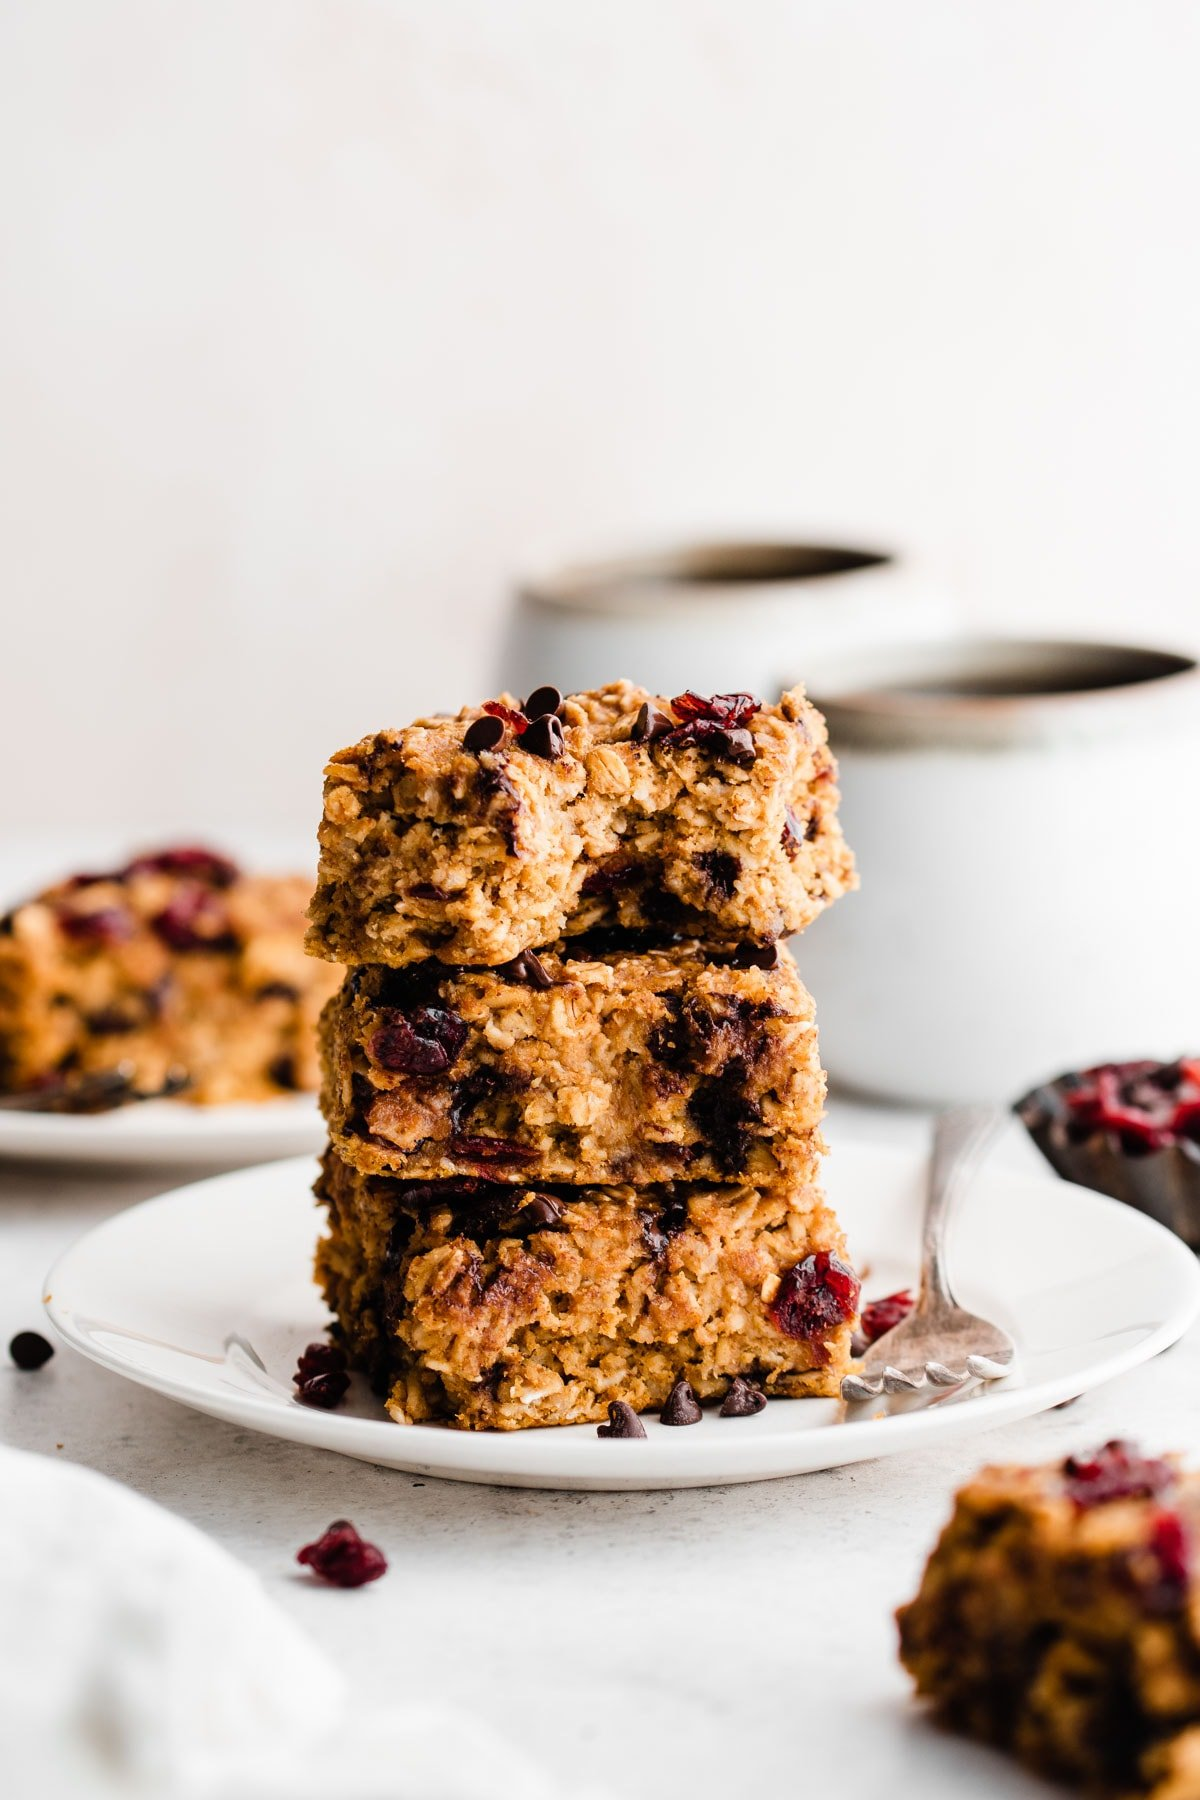 Gluten Free Pumpkin Peanut Butter Oatmeal Bars with Chocolate Chips and Cranberries